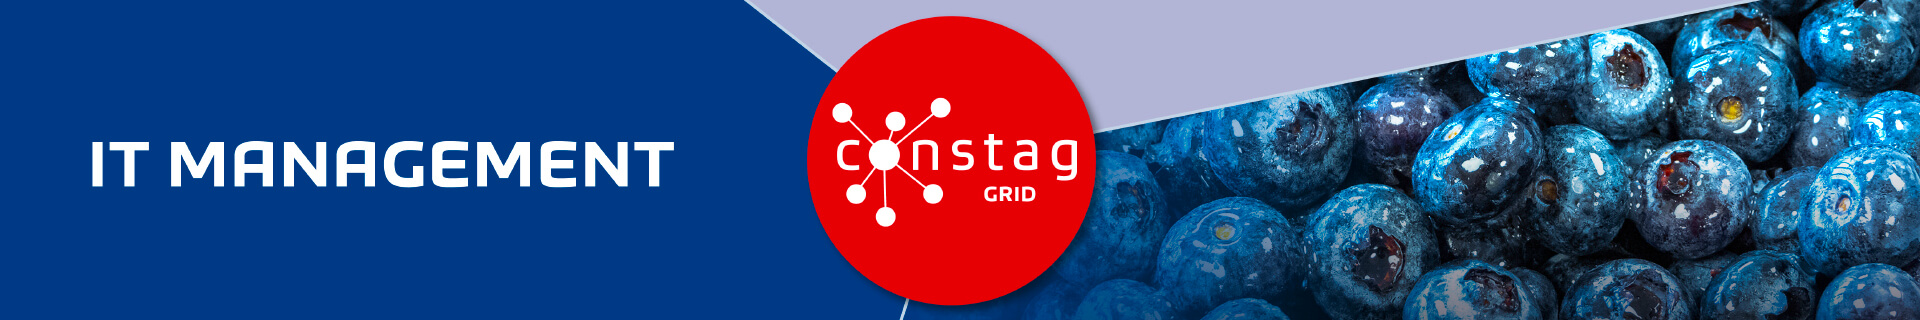 Constag Produkte IT-Management GRID